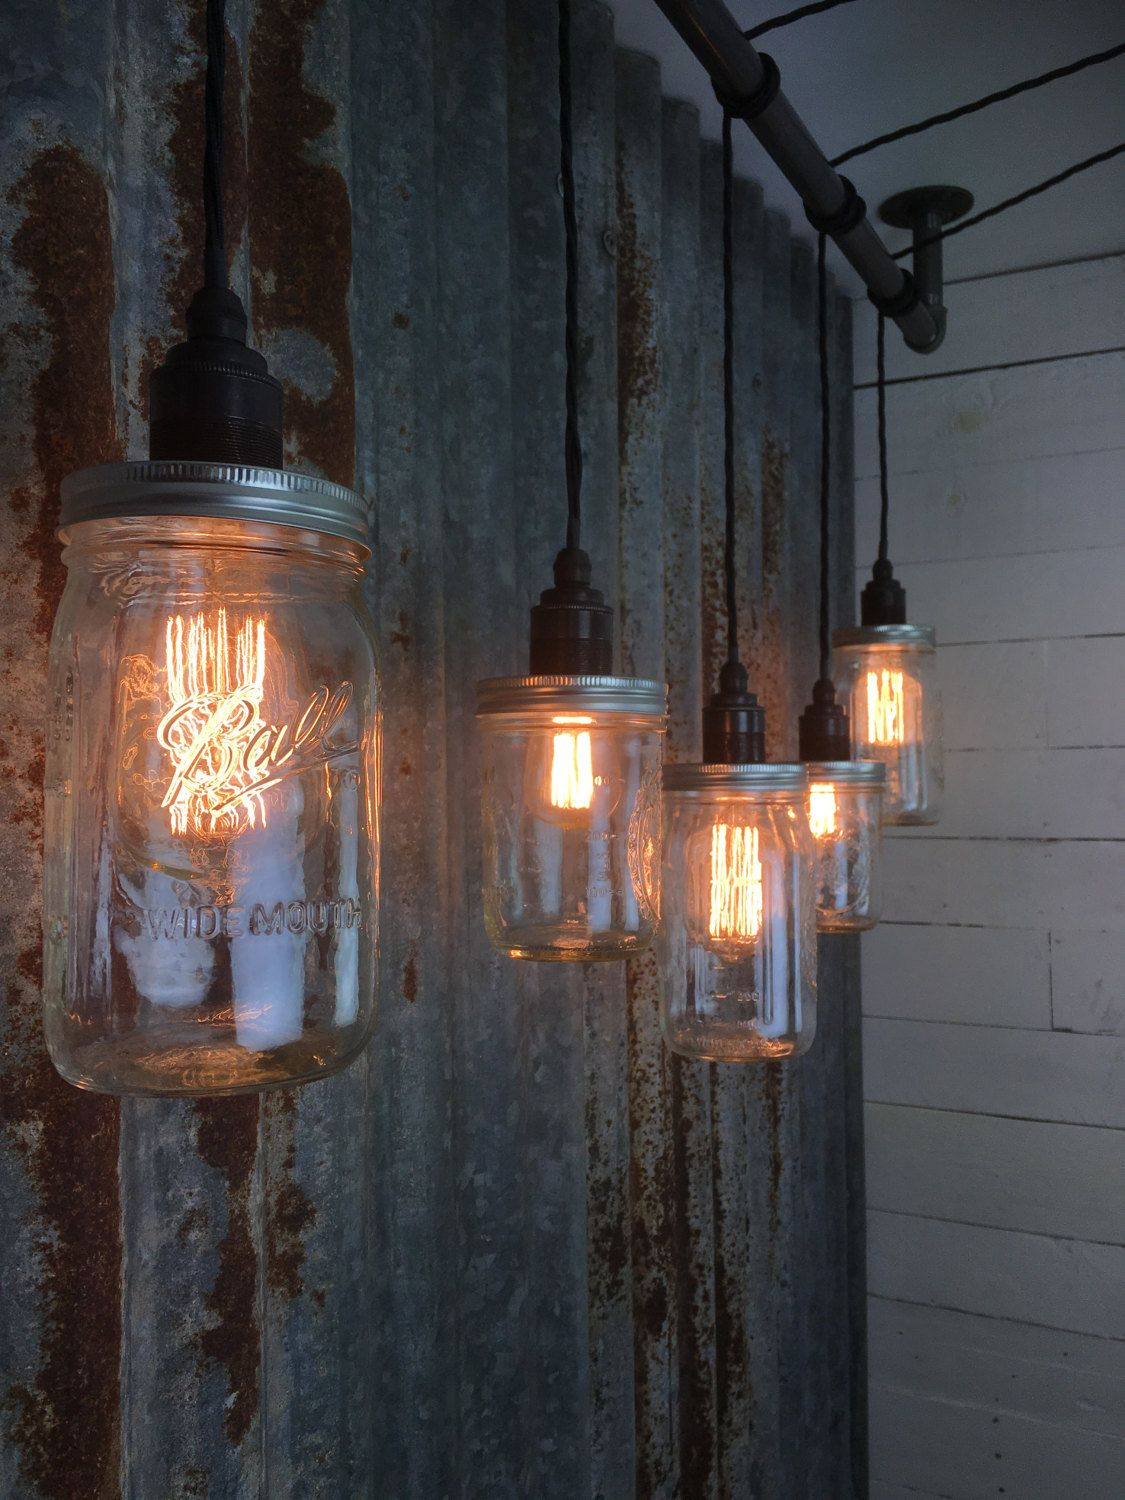 Handmade Urban Bar Pendant Light Mason Jar Industrial Light Urban Bar Ceiling Lamp With Jars Cromer Bar Pendant Lights Mason Jar Pendant Light Bar Ceilings